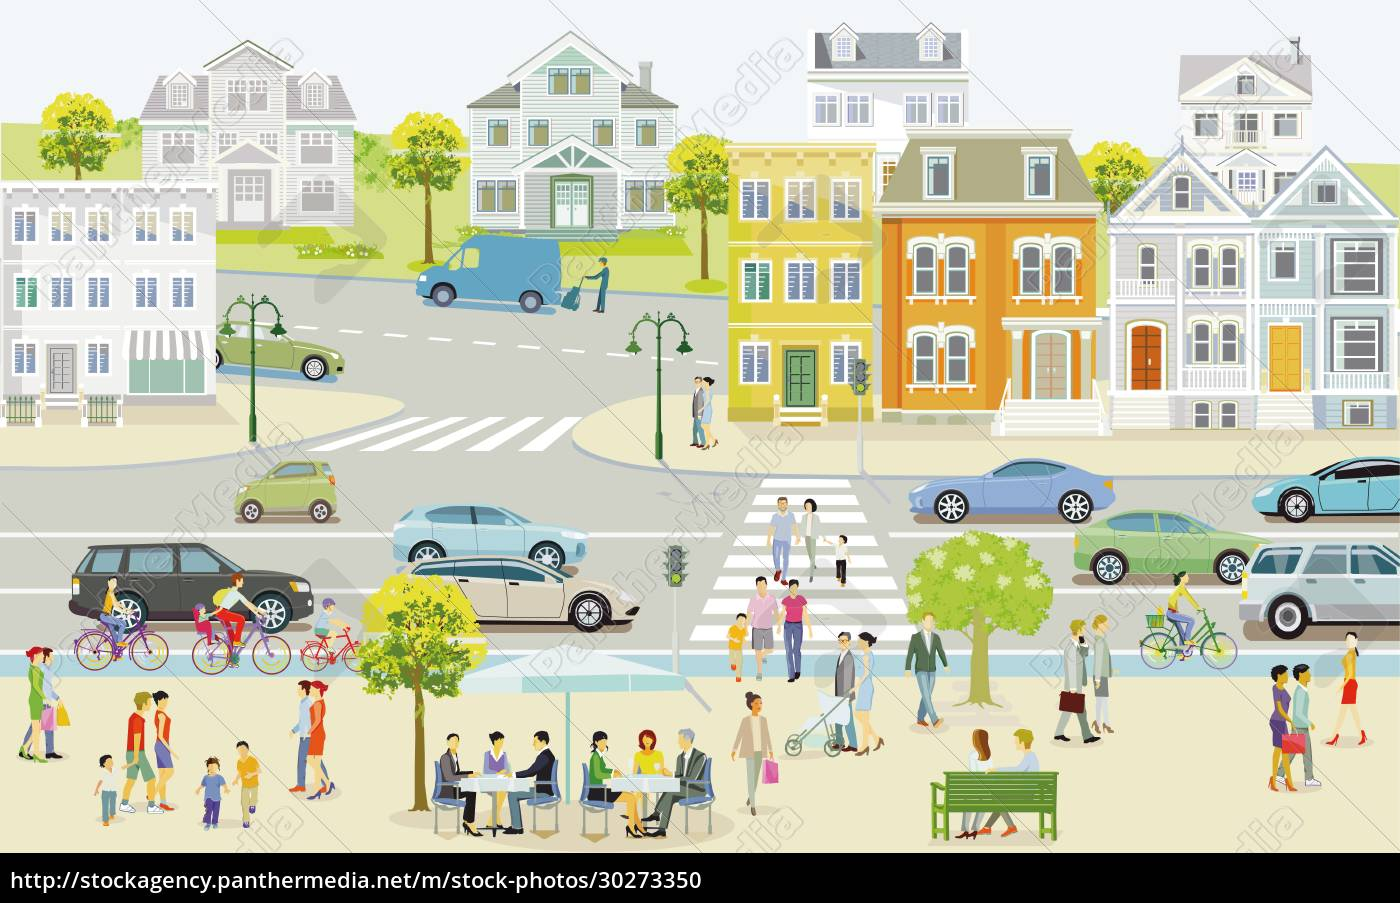 small, town, with, houses, and, traffic, - 30273350